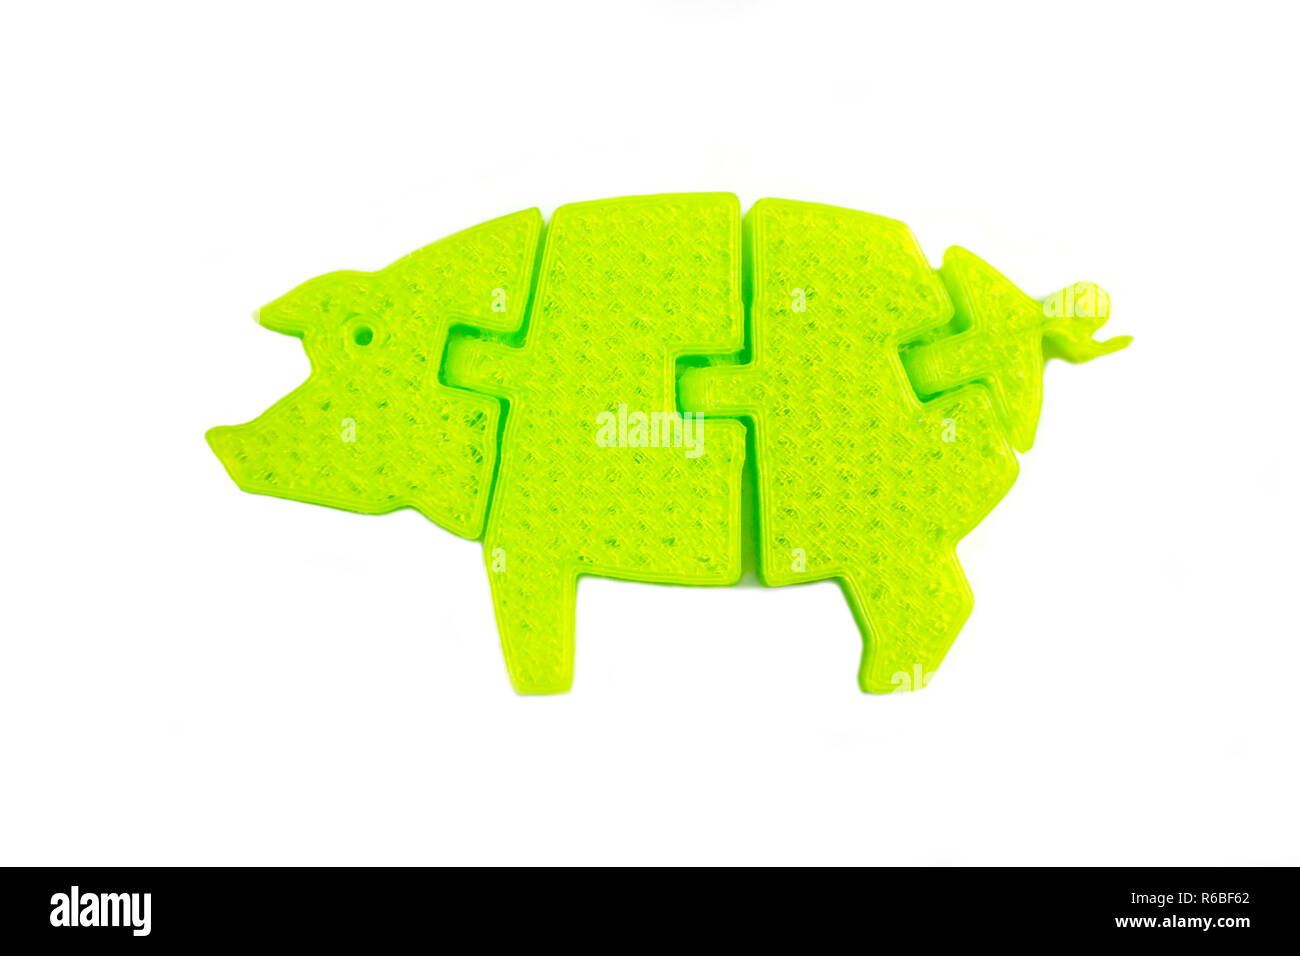 Model Pig Cut Out Stock Images Pictures Alamy Diagram Bright Light Green Object In Shape Of Toy Printed On 3d Printer Isolated White